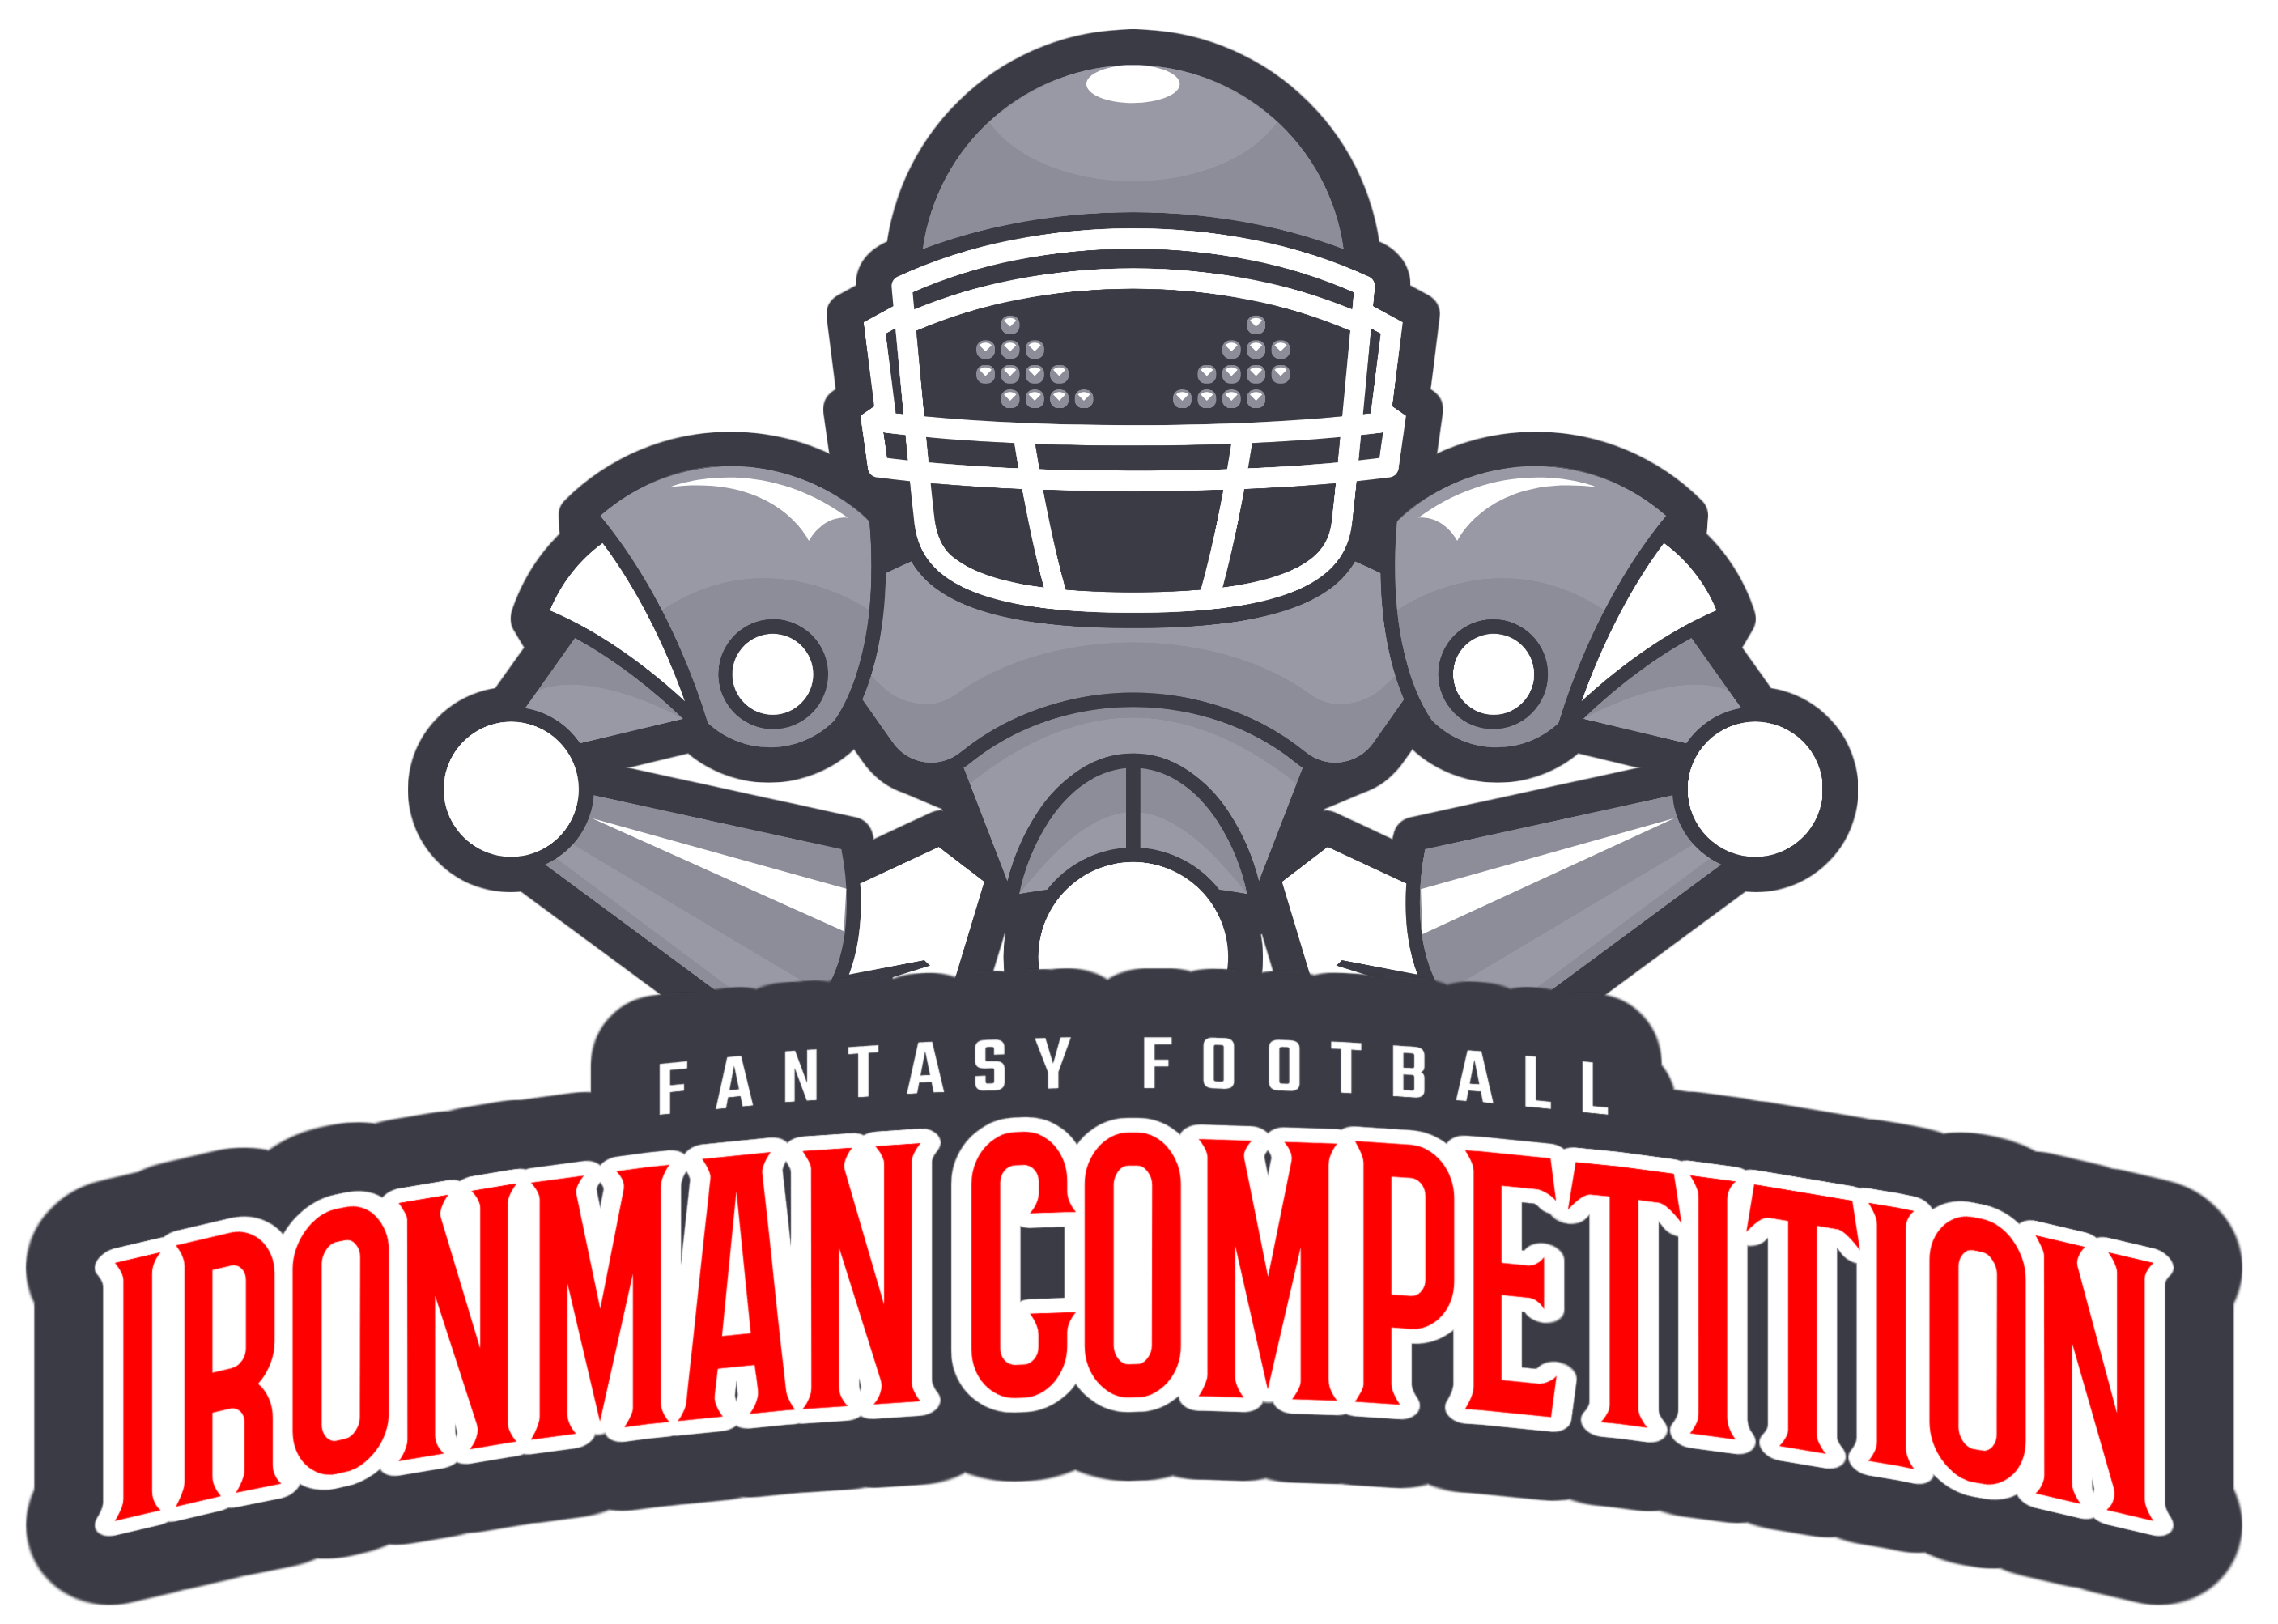 Fantasy Football Ironman Competition